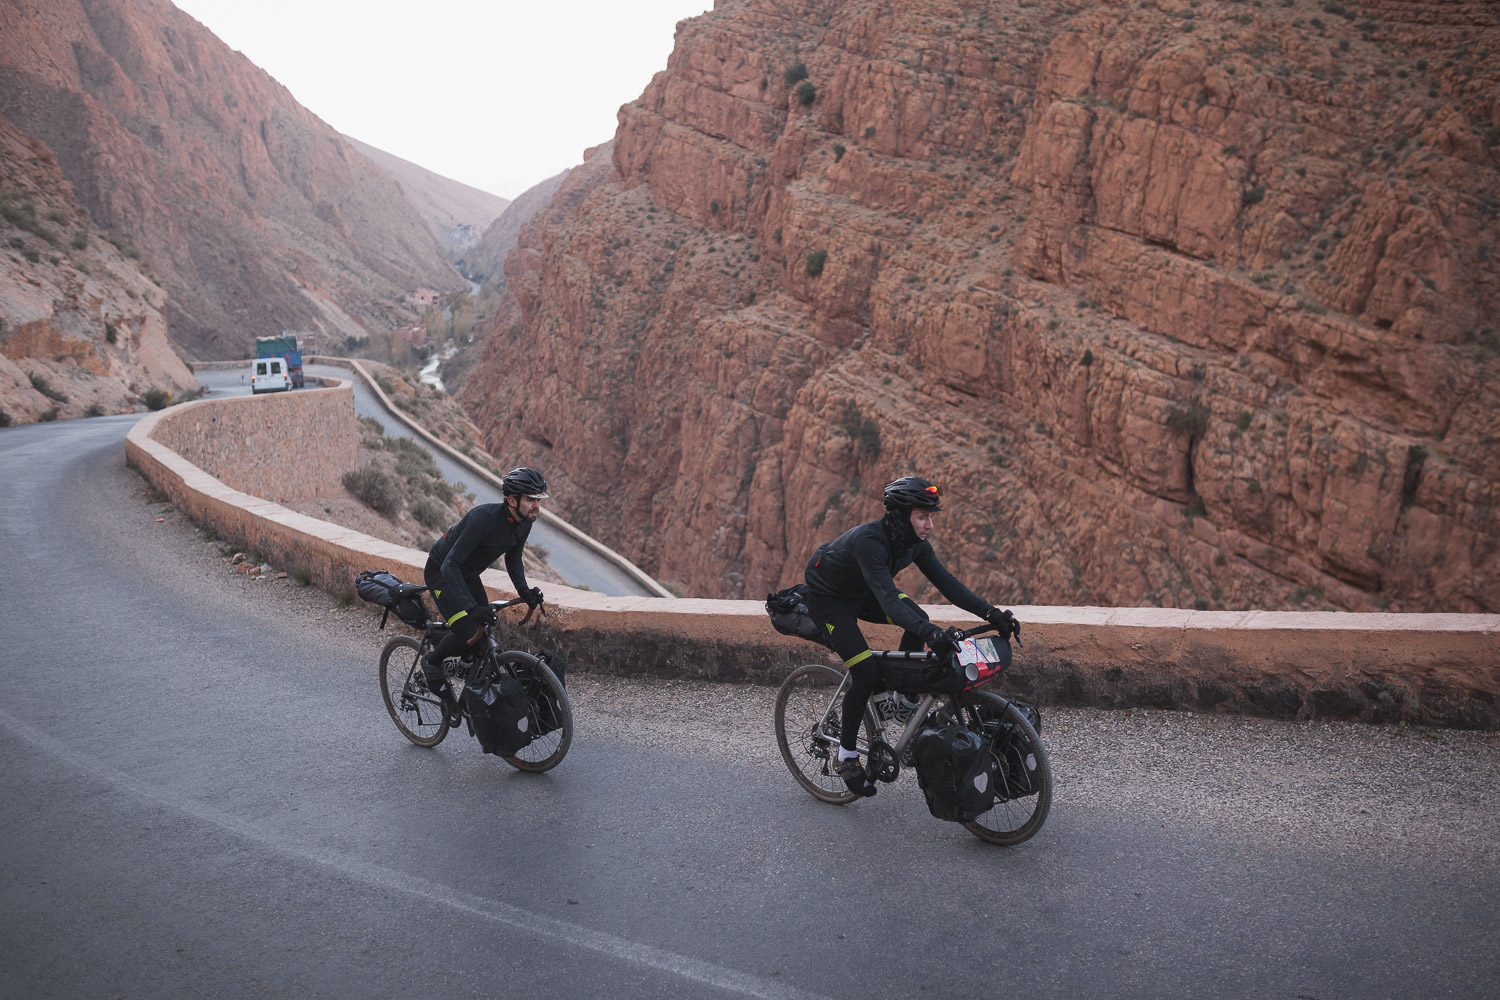 8bar bikes adventures morocco gravel 20151213 0011 bearbeitet - 8bar Adventures - Morocco - High Atlas - Part 2/2